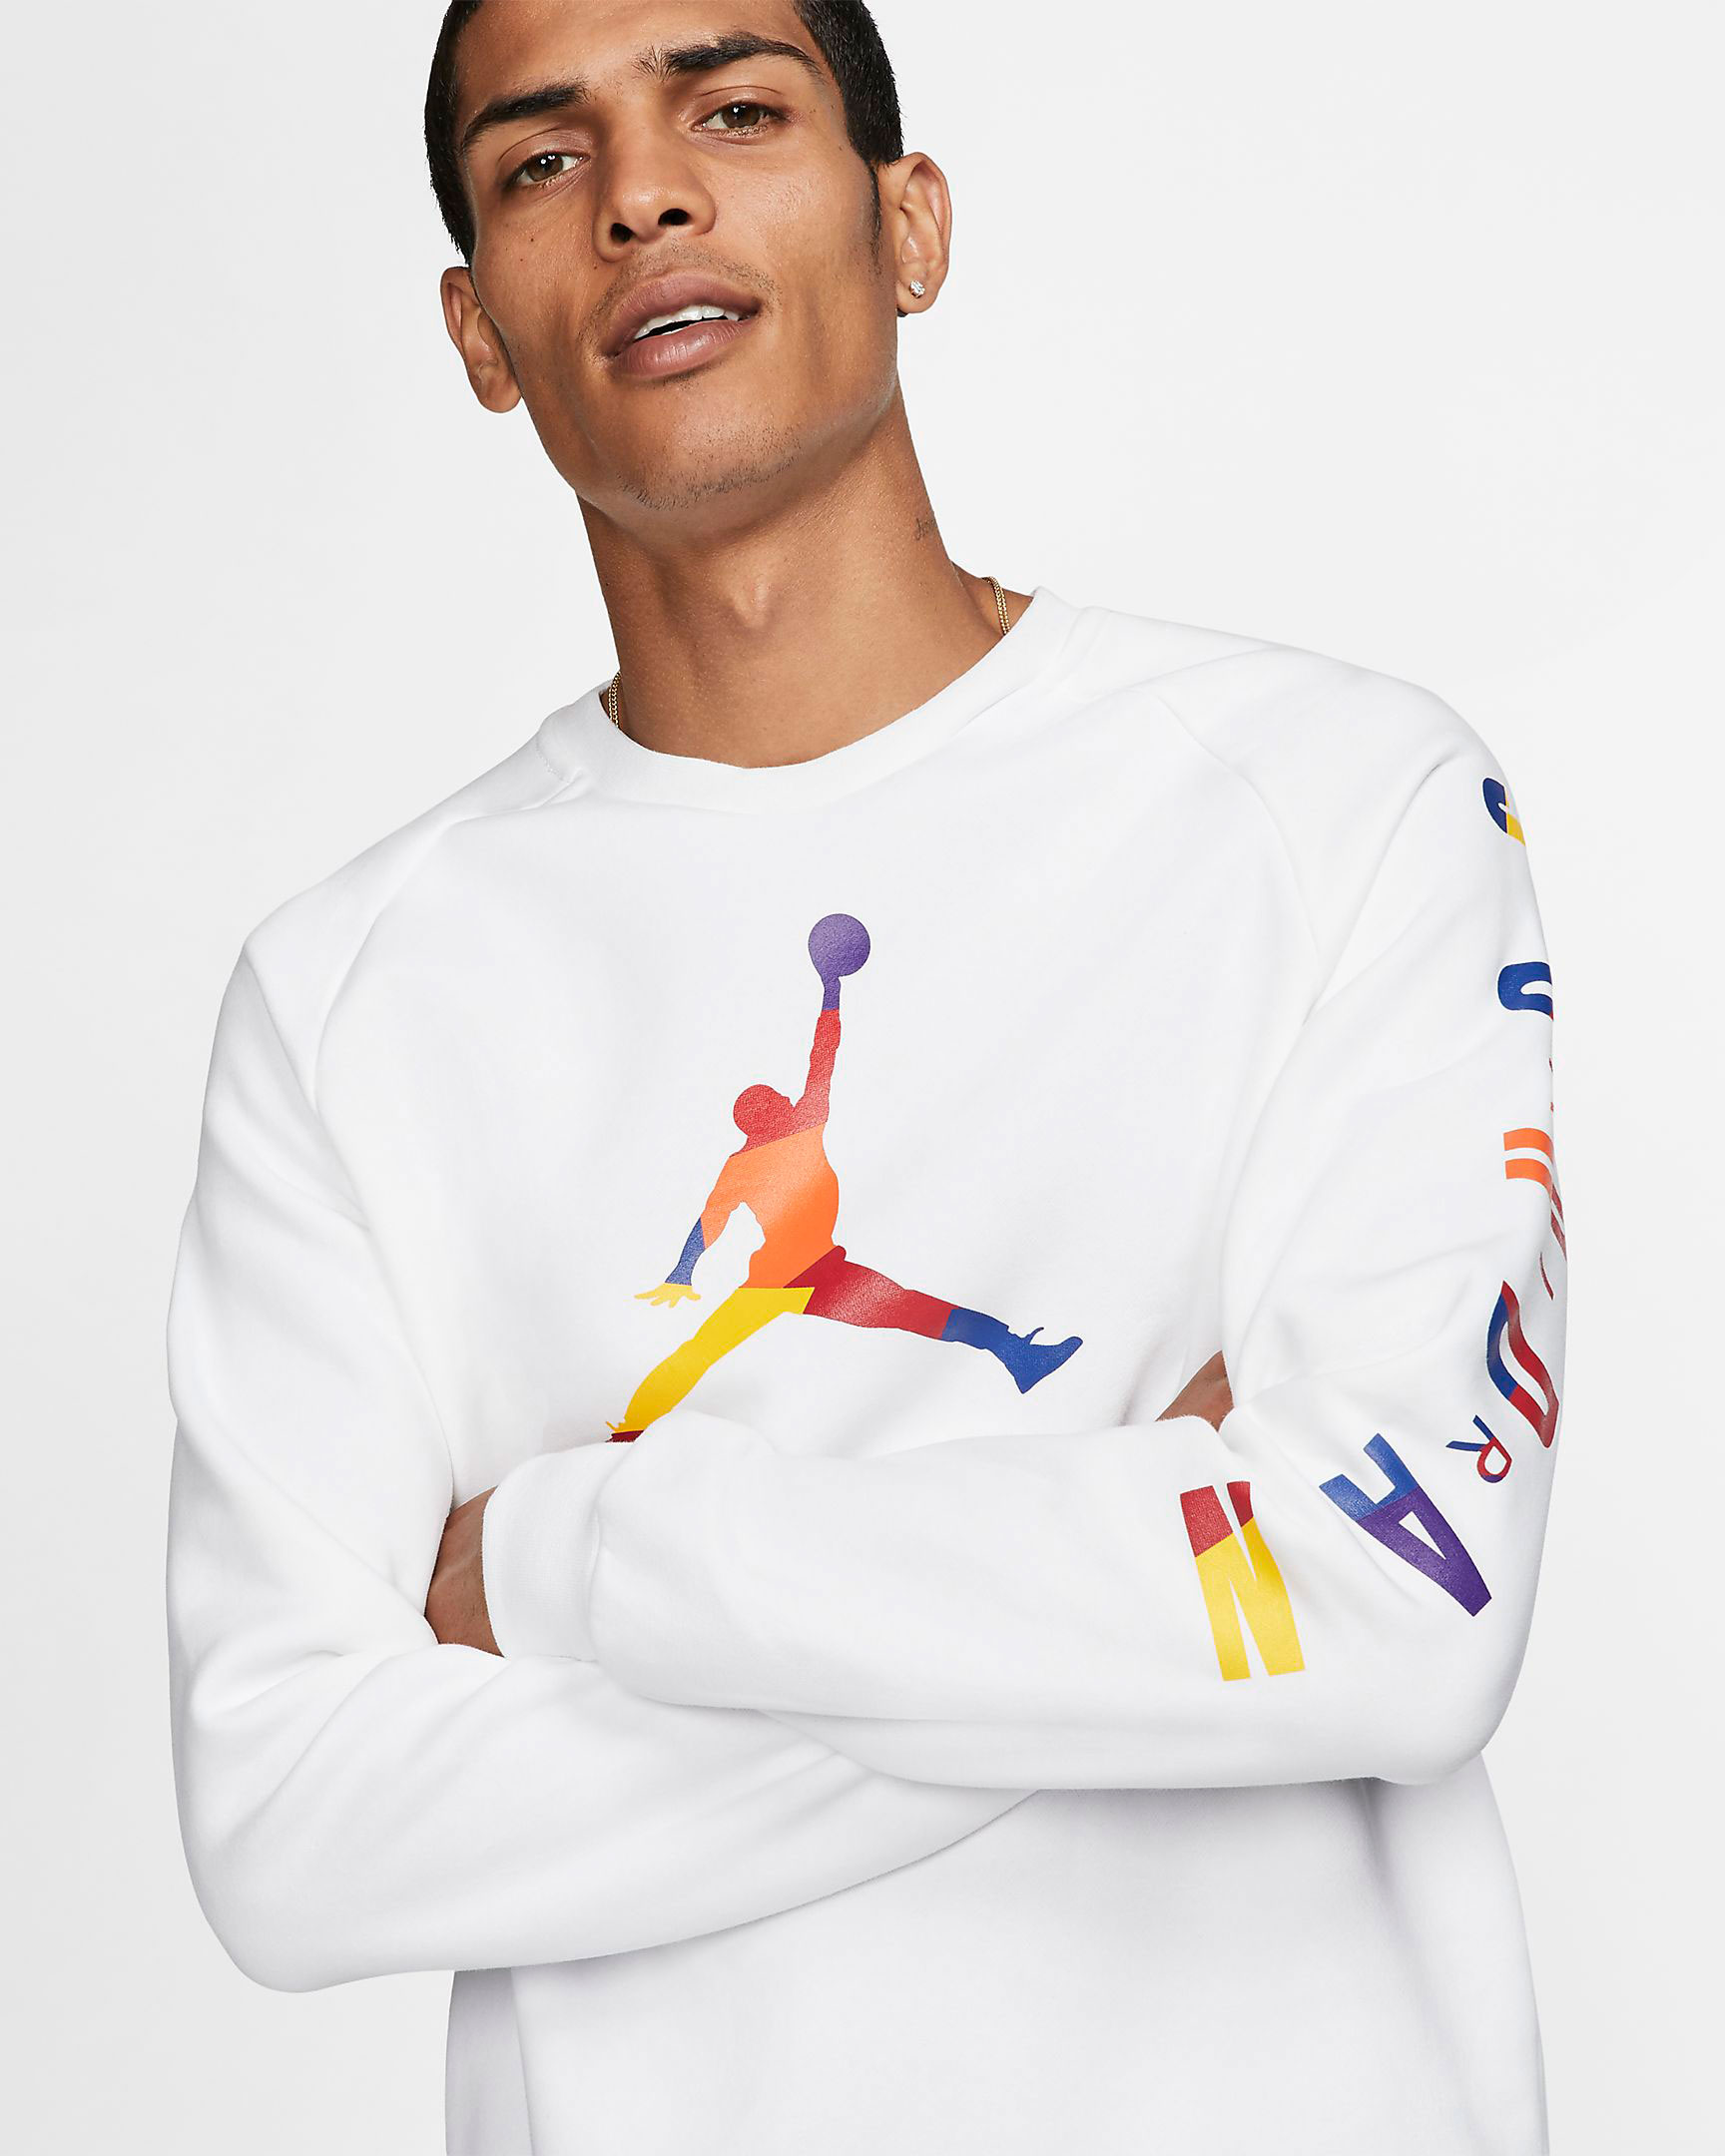 jordan-dna-crew-top-white